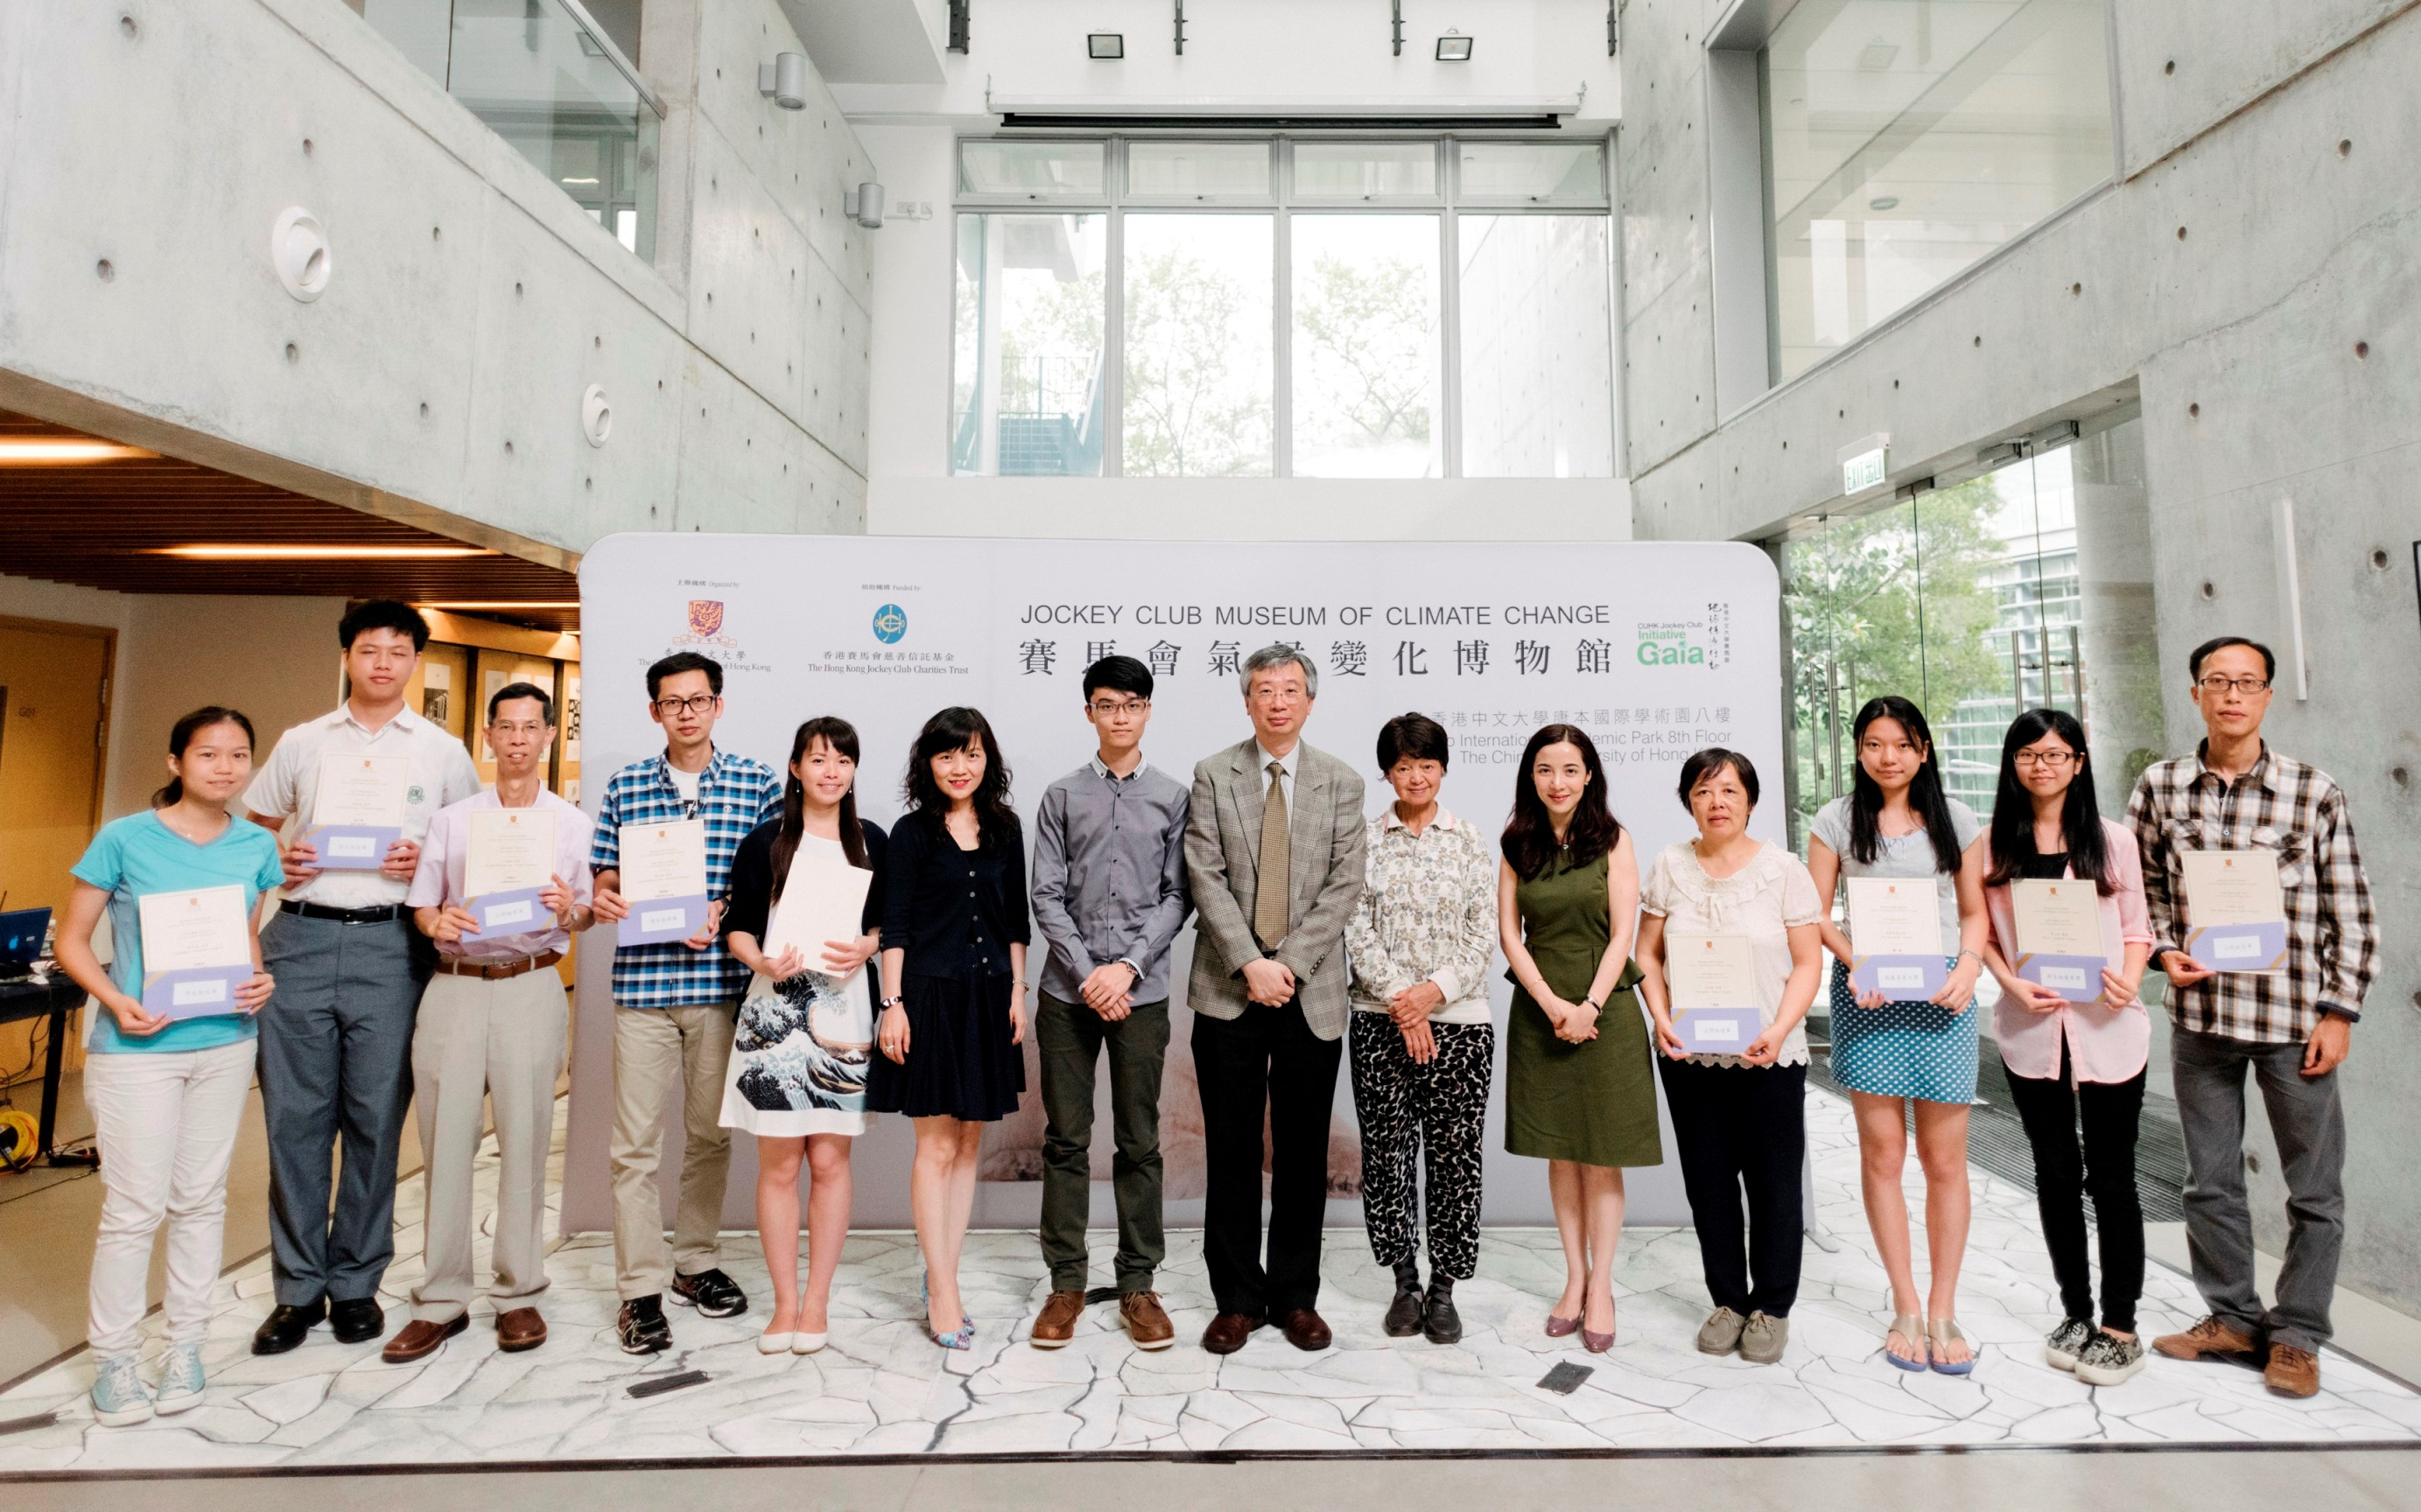 (6th–10th left) Mrs Cecilia LAM, Programme Director of CUHK Jockey Club Initiative Gaia; Mr Harry SIT, President of CUHK Chung Chi Photography Society; Prof. FUNG Tung, Associate Vice-President of CUHK; Ms CHOW Chung Ling, Honorary Advisor of the Chinese YMCA Photography Society HK, and Ms Shirley FISHER, Charities Manager of The Hong Kong Jockey Club post for a group photo with winners of the Eco Tour Photo Contest.